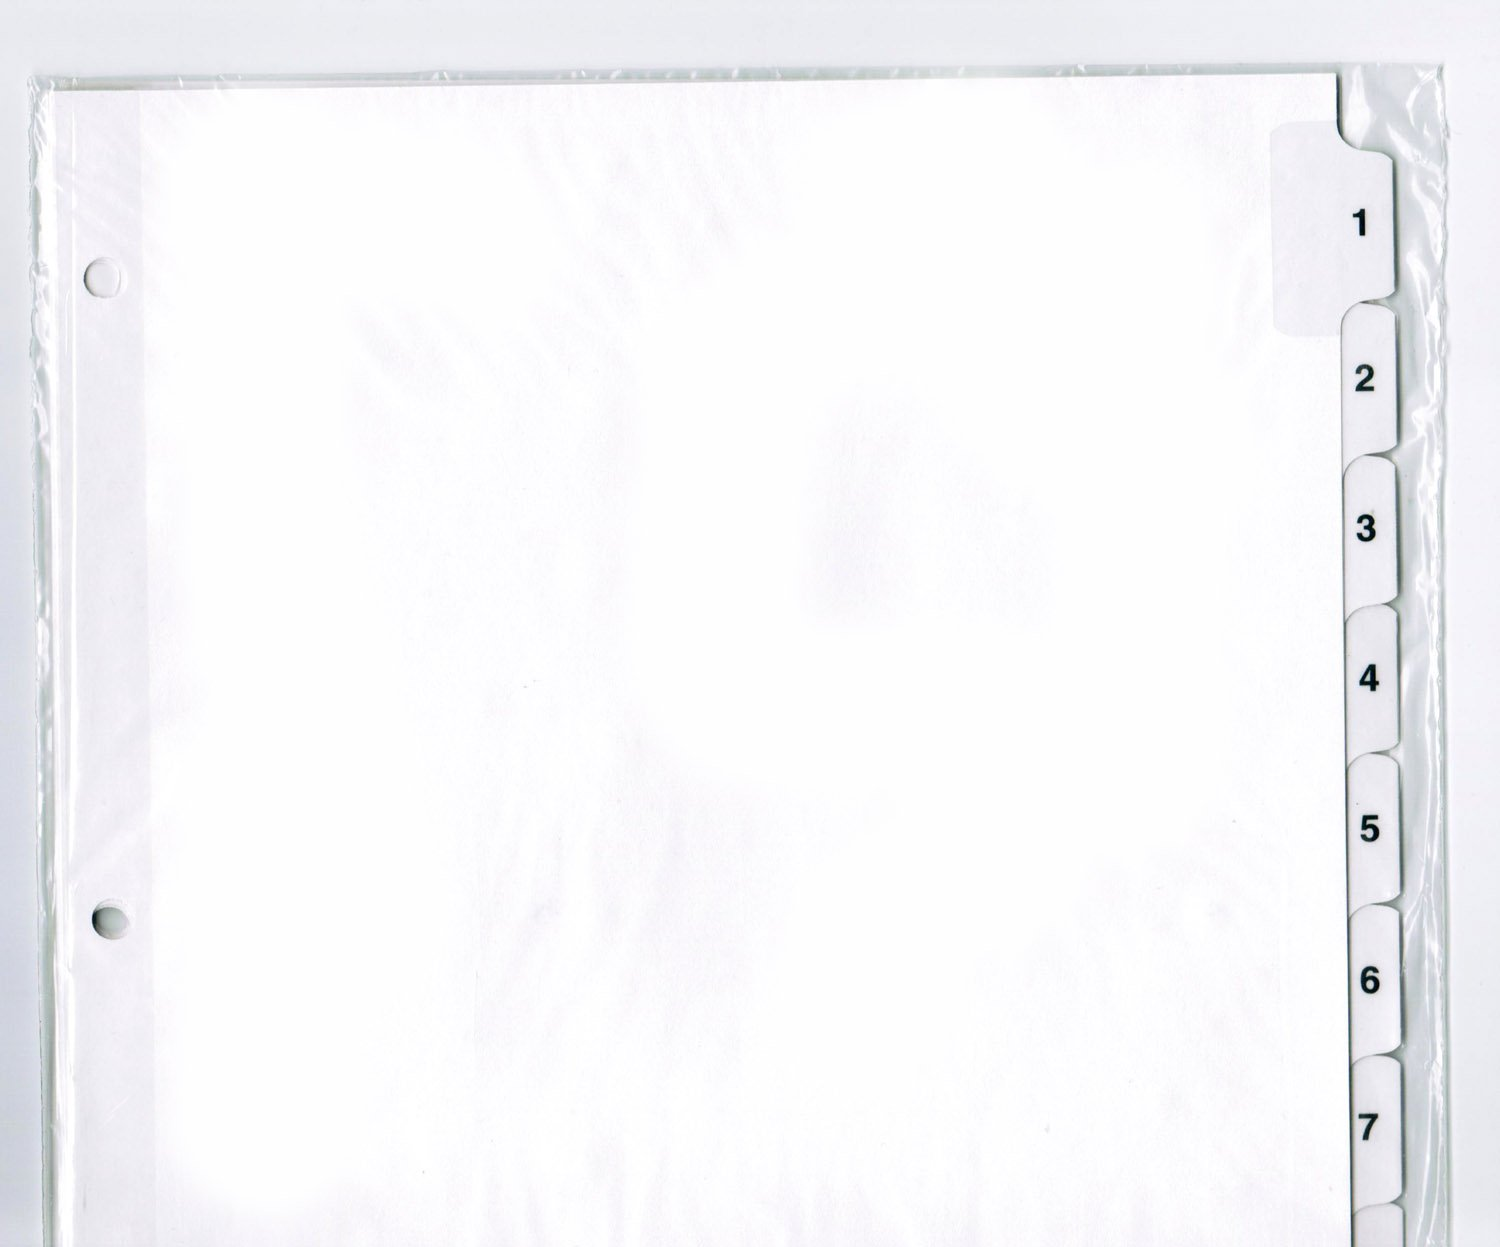 3 Ring Pre-Printed Index Sheets, Numbered 1-10 on White Mylar Reinforced Tabs, 11'' x 8-1/2'', Full Set